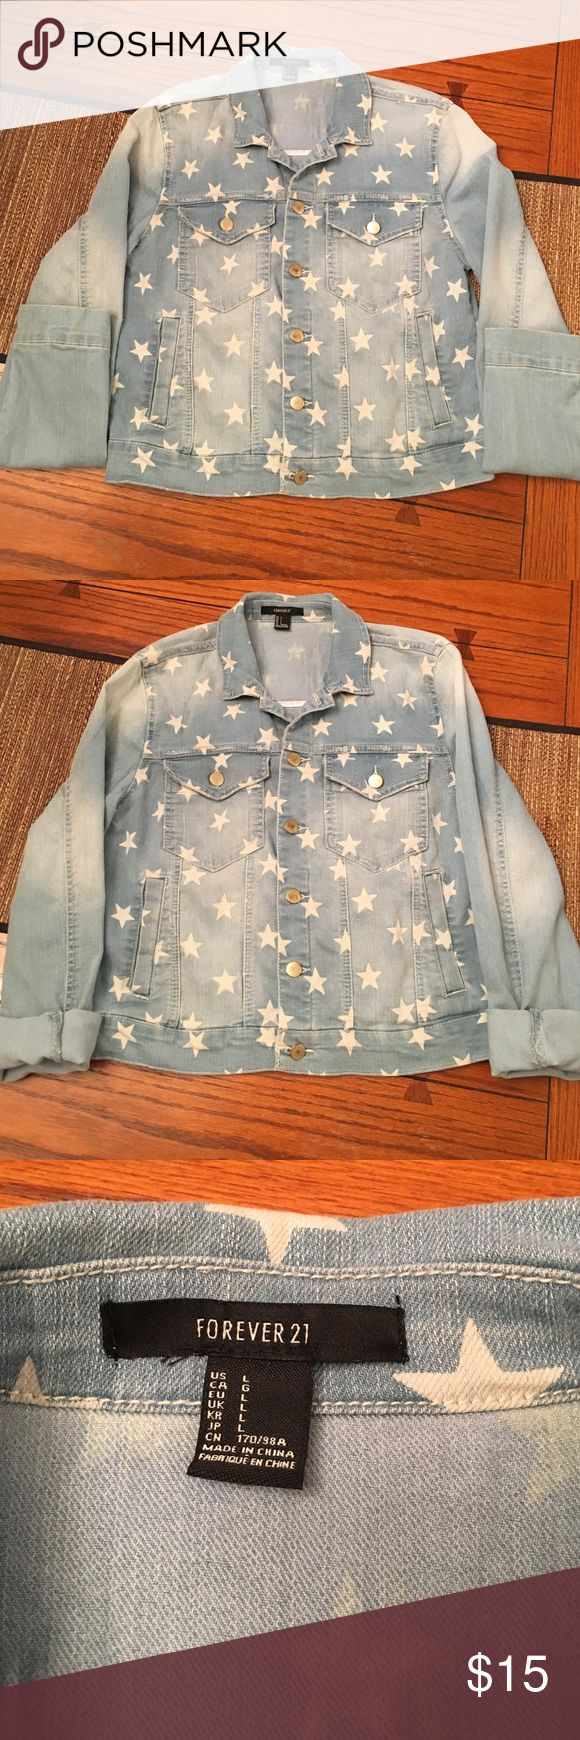 Jean jacket women's large Forever 21 jean jacket women's size large (fitted large... not baggy/bulky) Faded light blue jean style with star print. No stains or holes.  Sleeves can be cuffed/rolled up for a different styled look.  Super cute jacket... cute ANY time of the year but especially around 4th of July, on a cool night! Forever 21 Jackets & Coats Jean Jackets